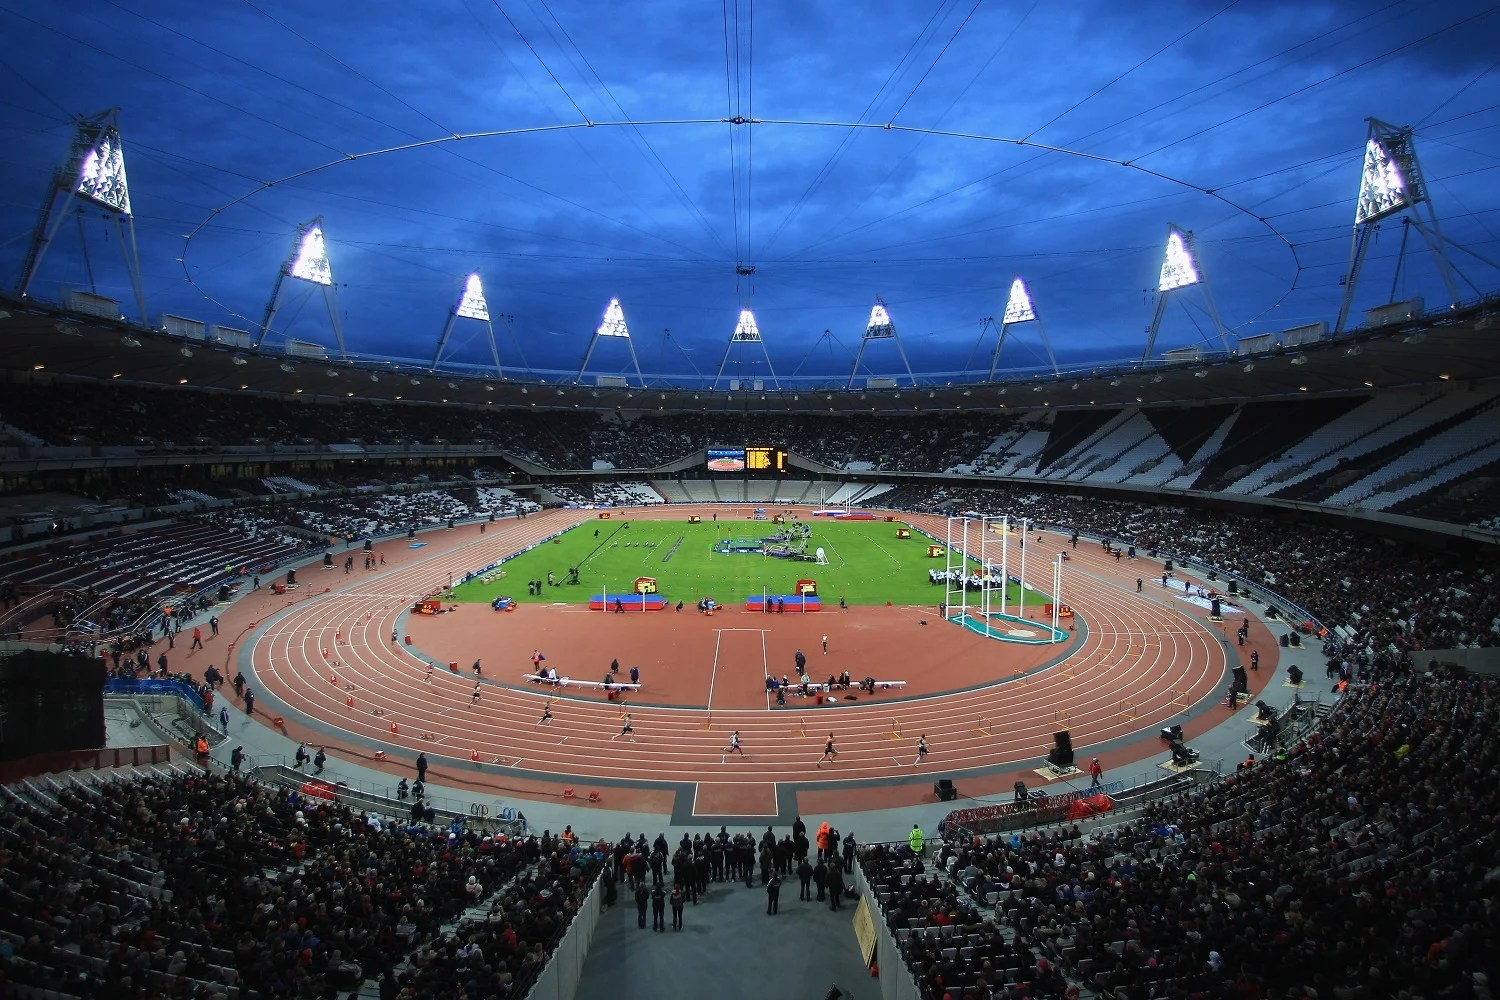 London 2012 Olympics running track goes on public sale for